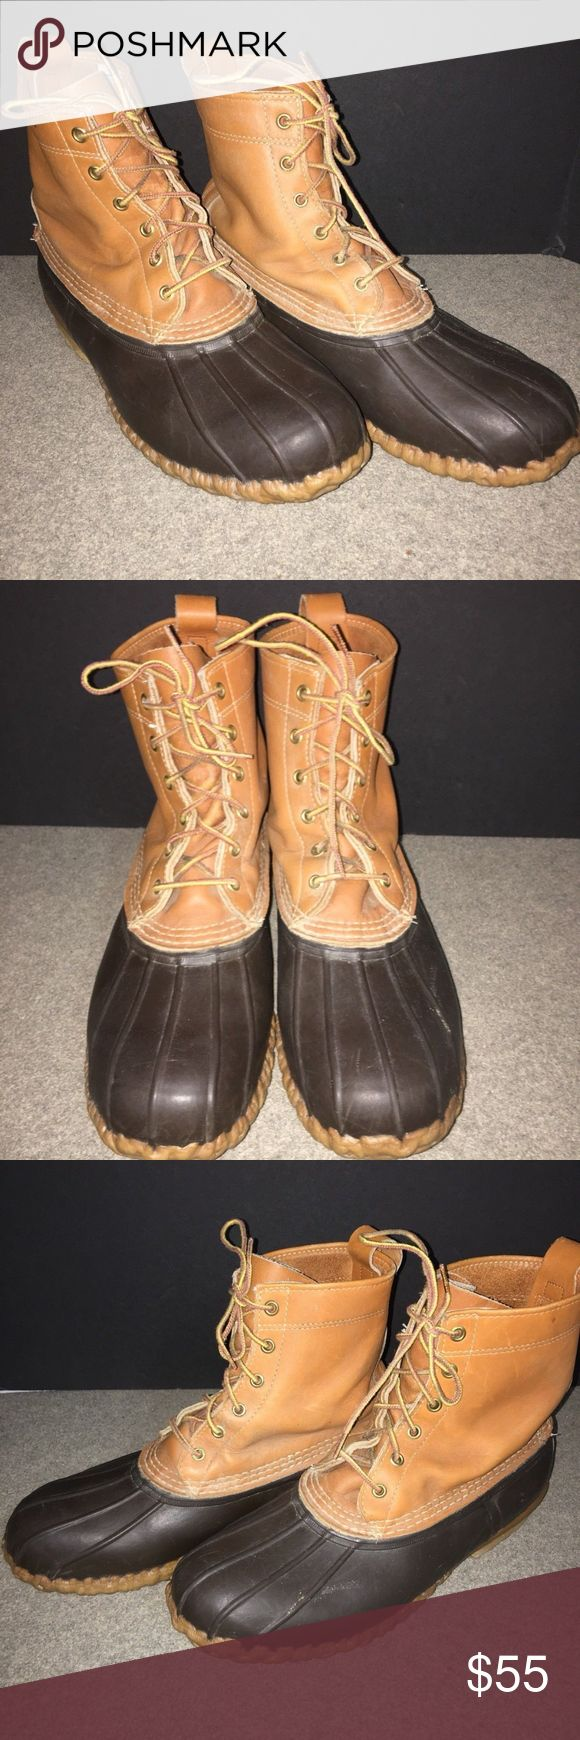 """LL Bean 8"""" Leather Rise Duck Boots Mens Size 10 Very nice pair of duck boots. Previously owned, but well cared for LL Bean Duck Boots Men's Size 10. 8"""" Leather Rise above the """"Duck"""" Boot L.L. Bean Shoes Boots"""